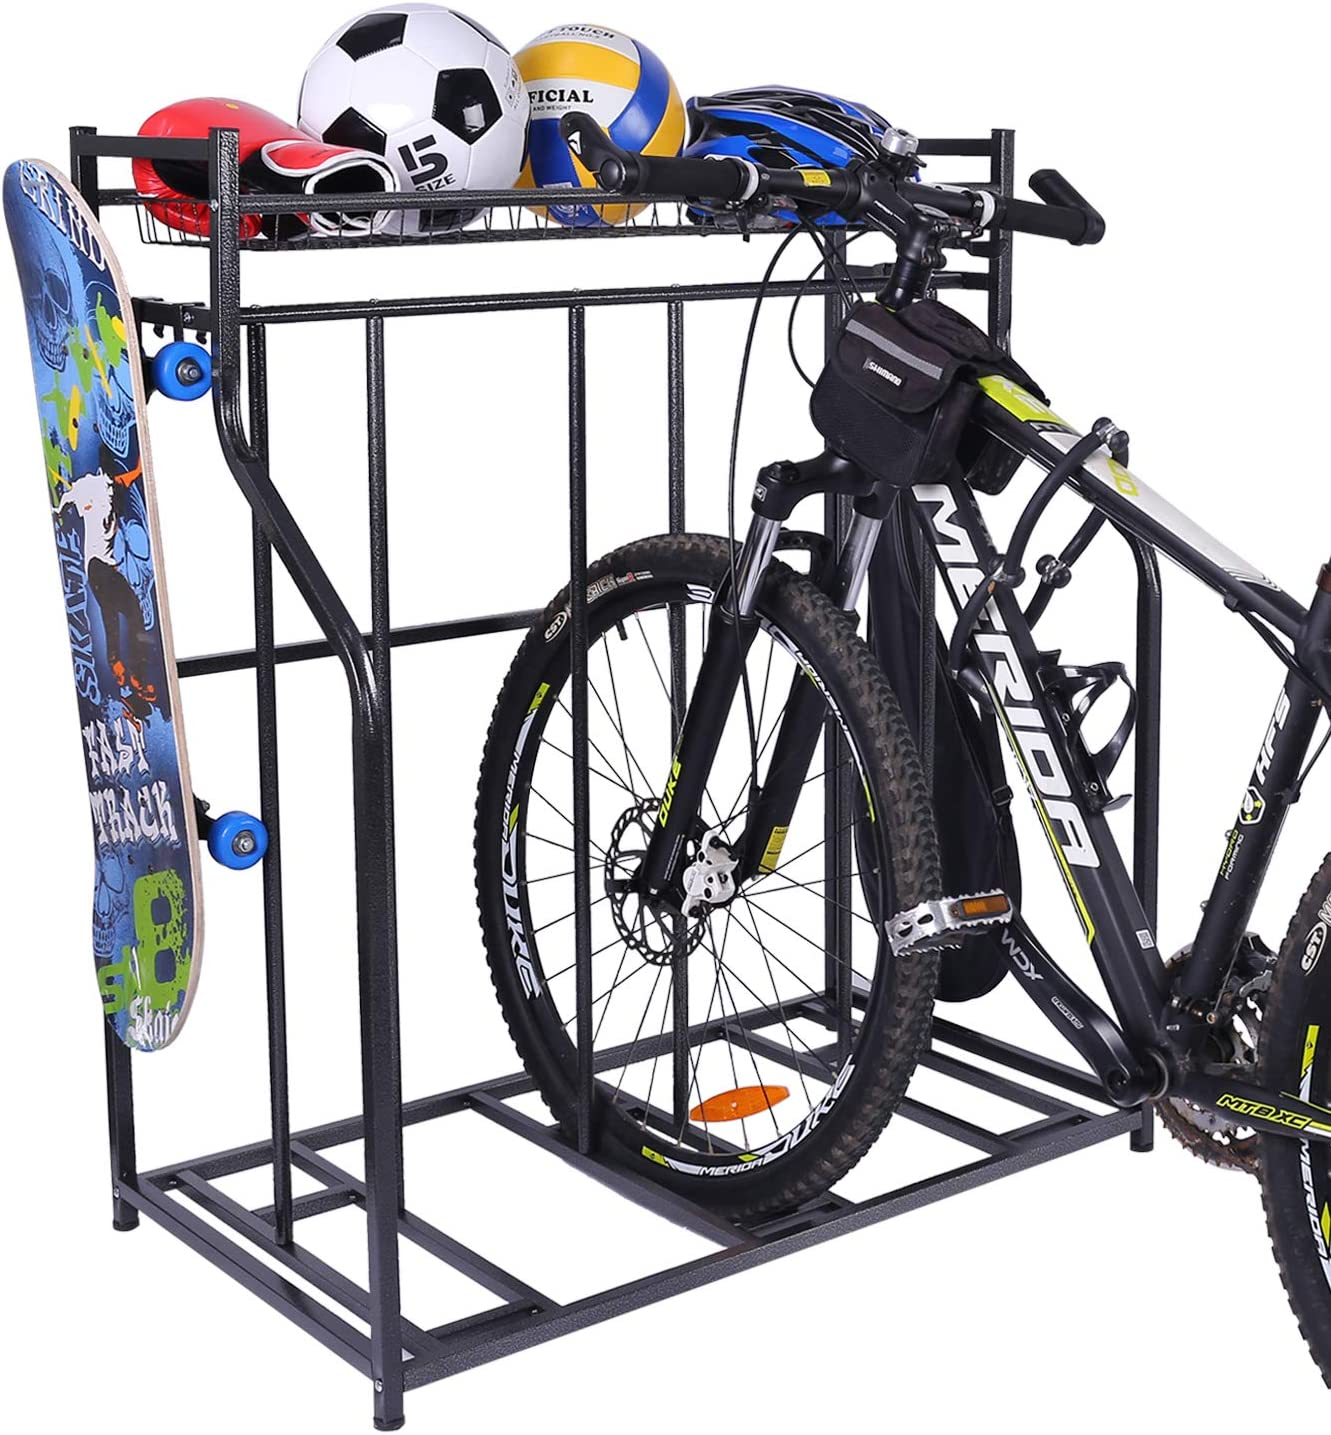 Bike floor rack with room for additional storage